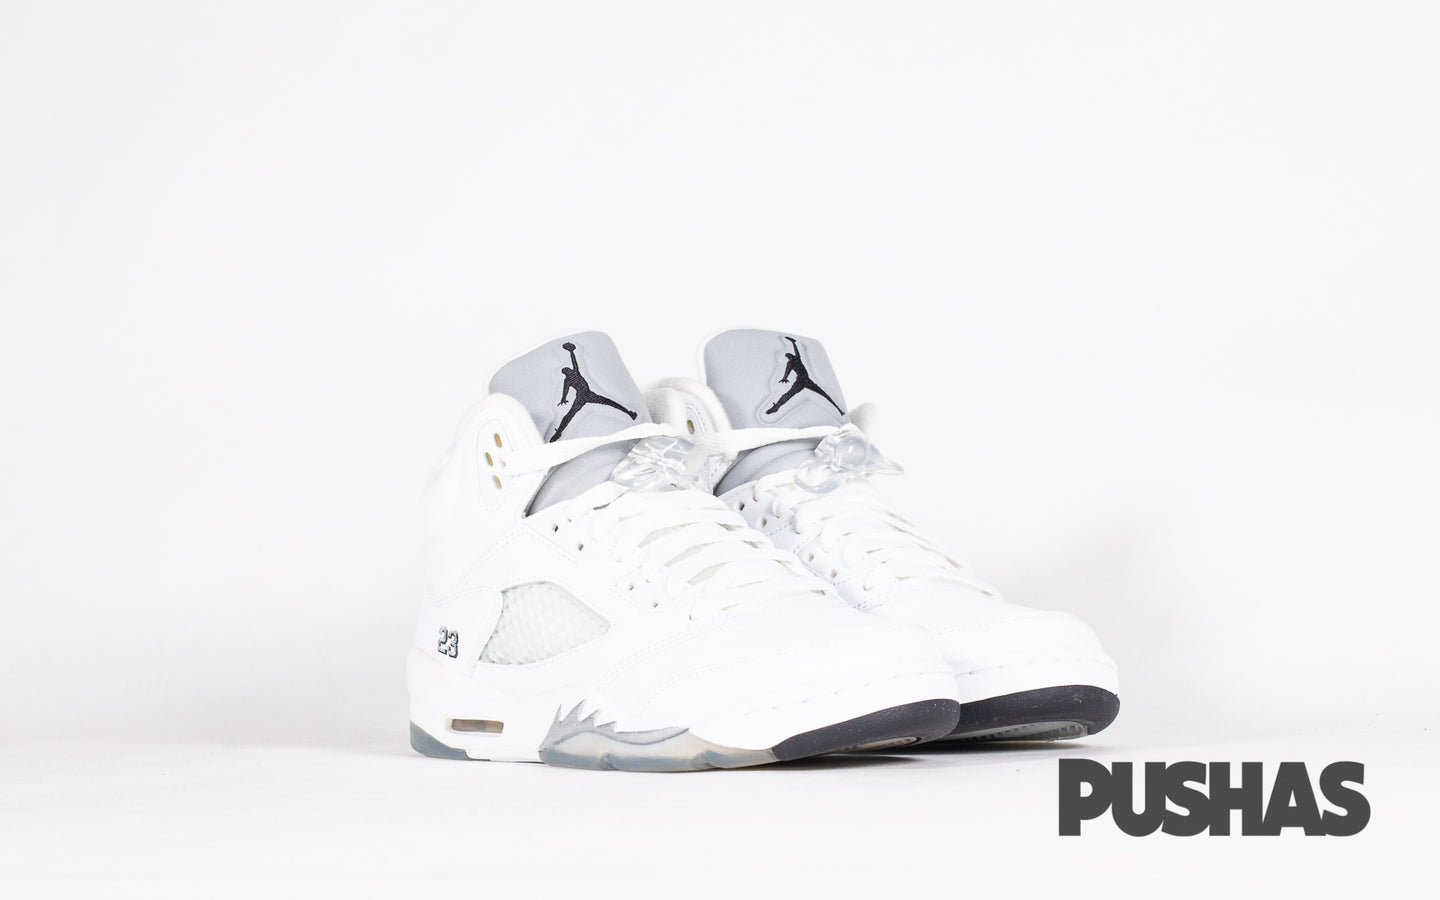 pushas-Nike-Air-Jordan-5-Retro-Metallic-White-GS